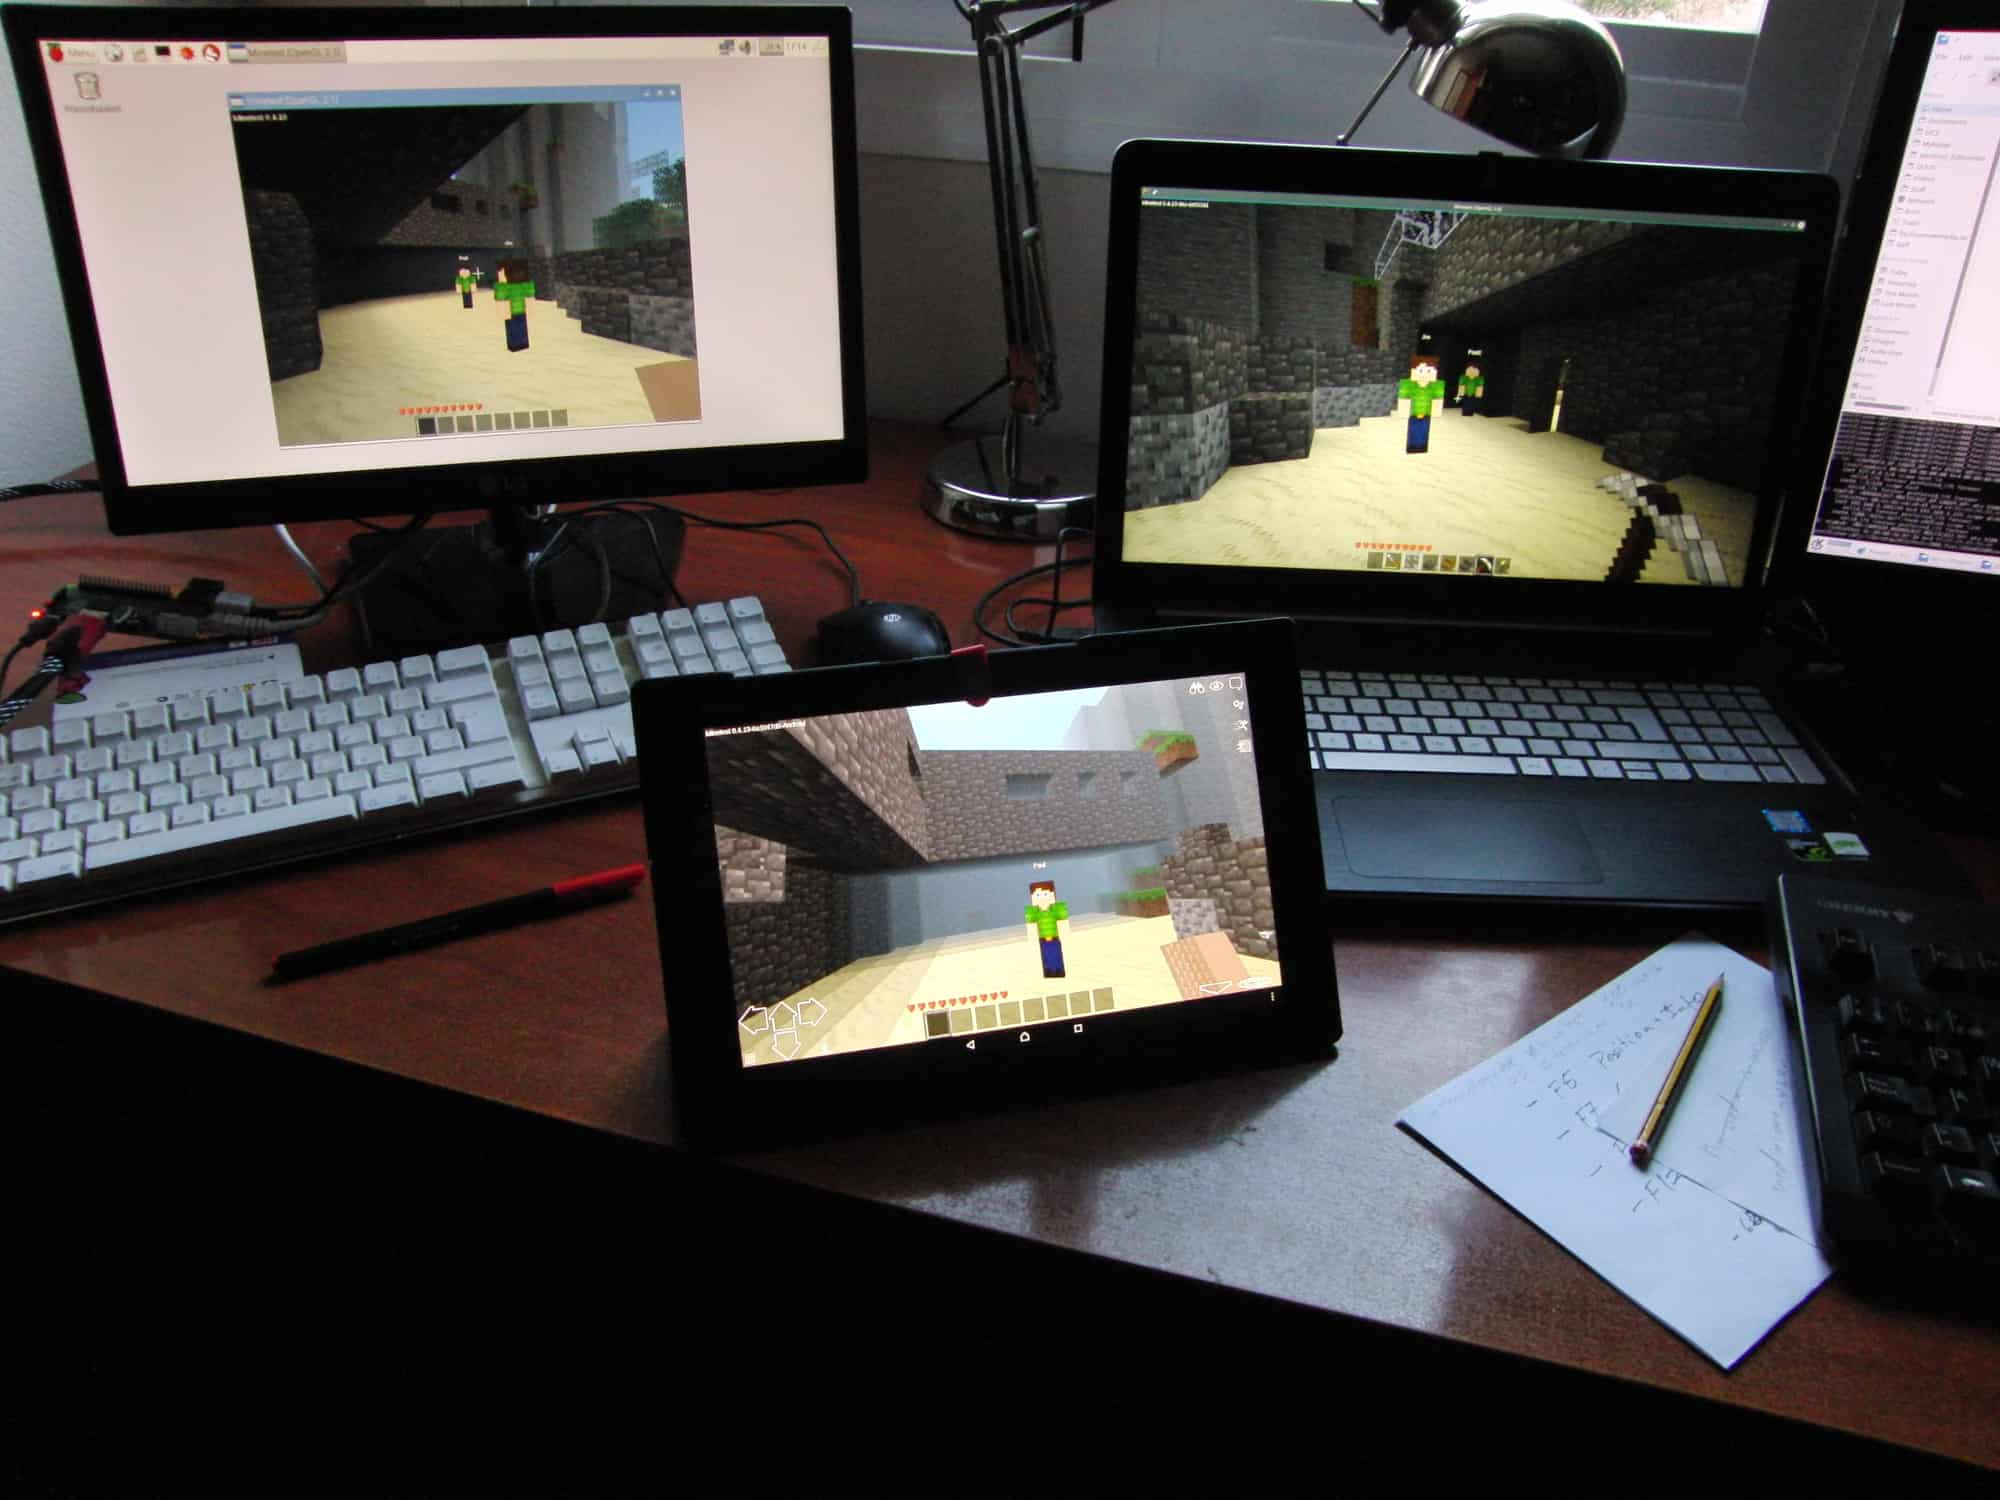 From left to right, Minetest running on a Raspberry Pi, an Android tablet, and a PC with Linux.